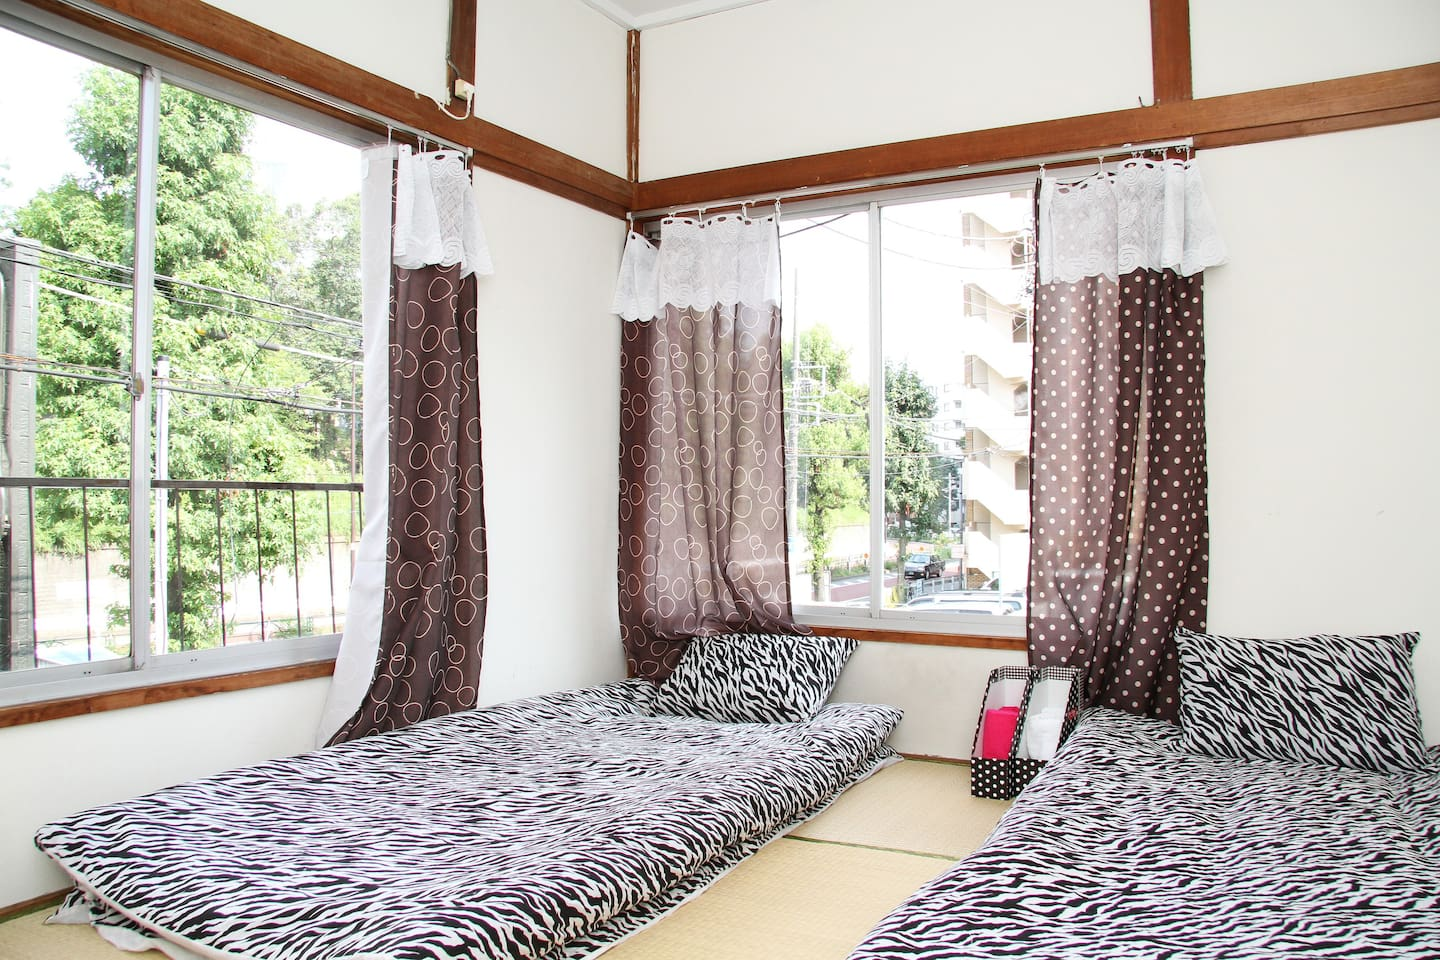 There are 3 bedrooms like this one - all with great outside views